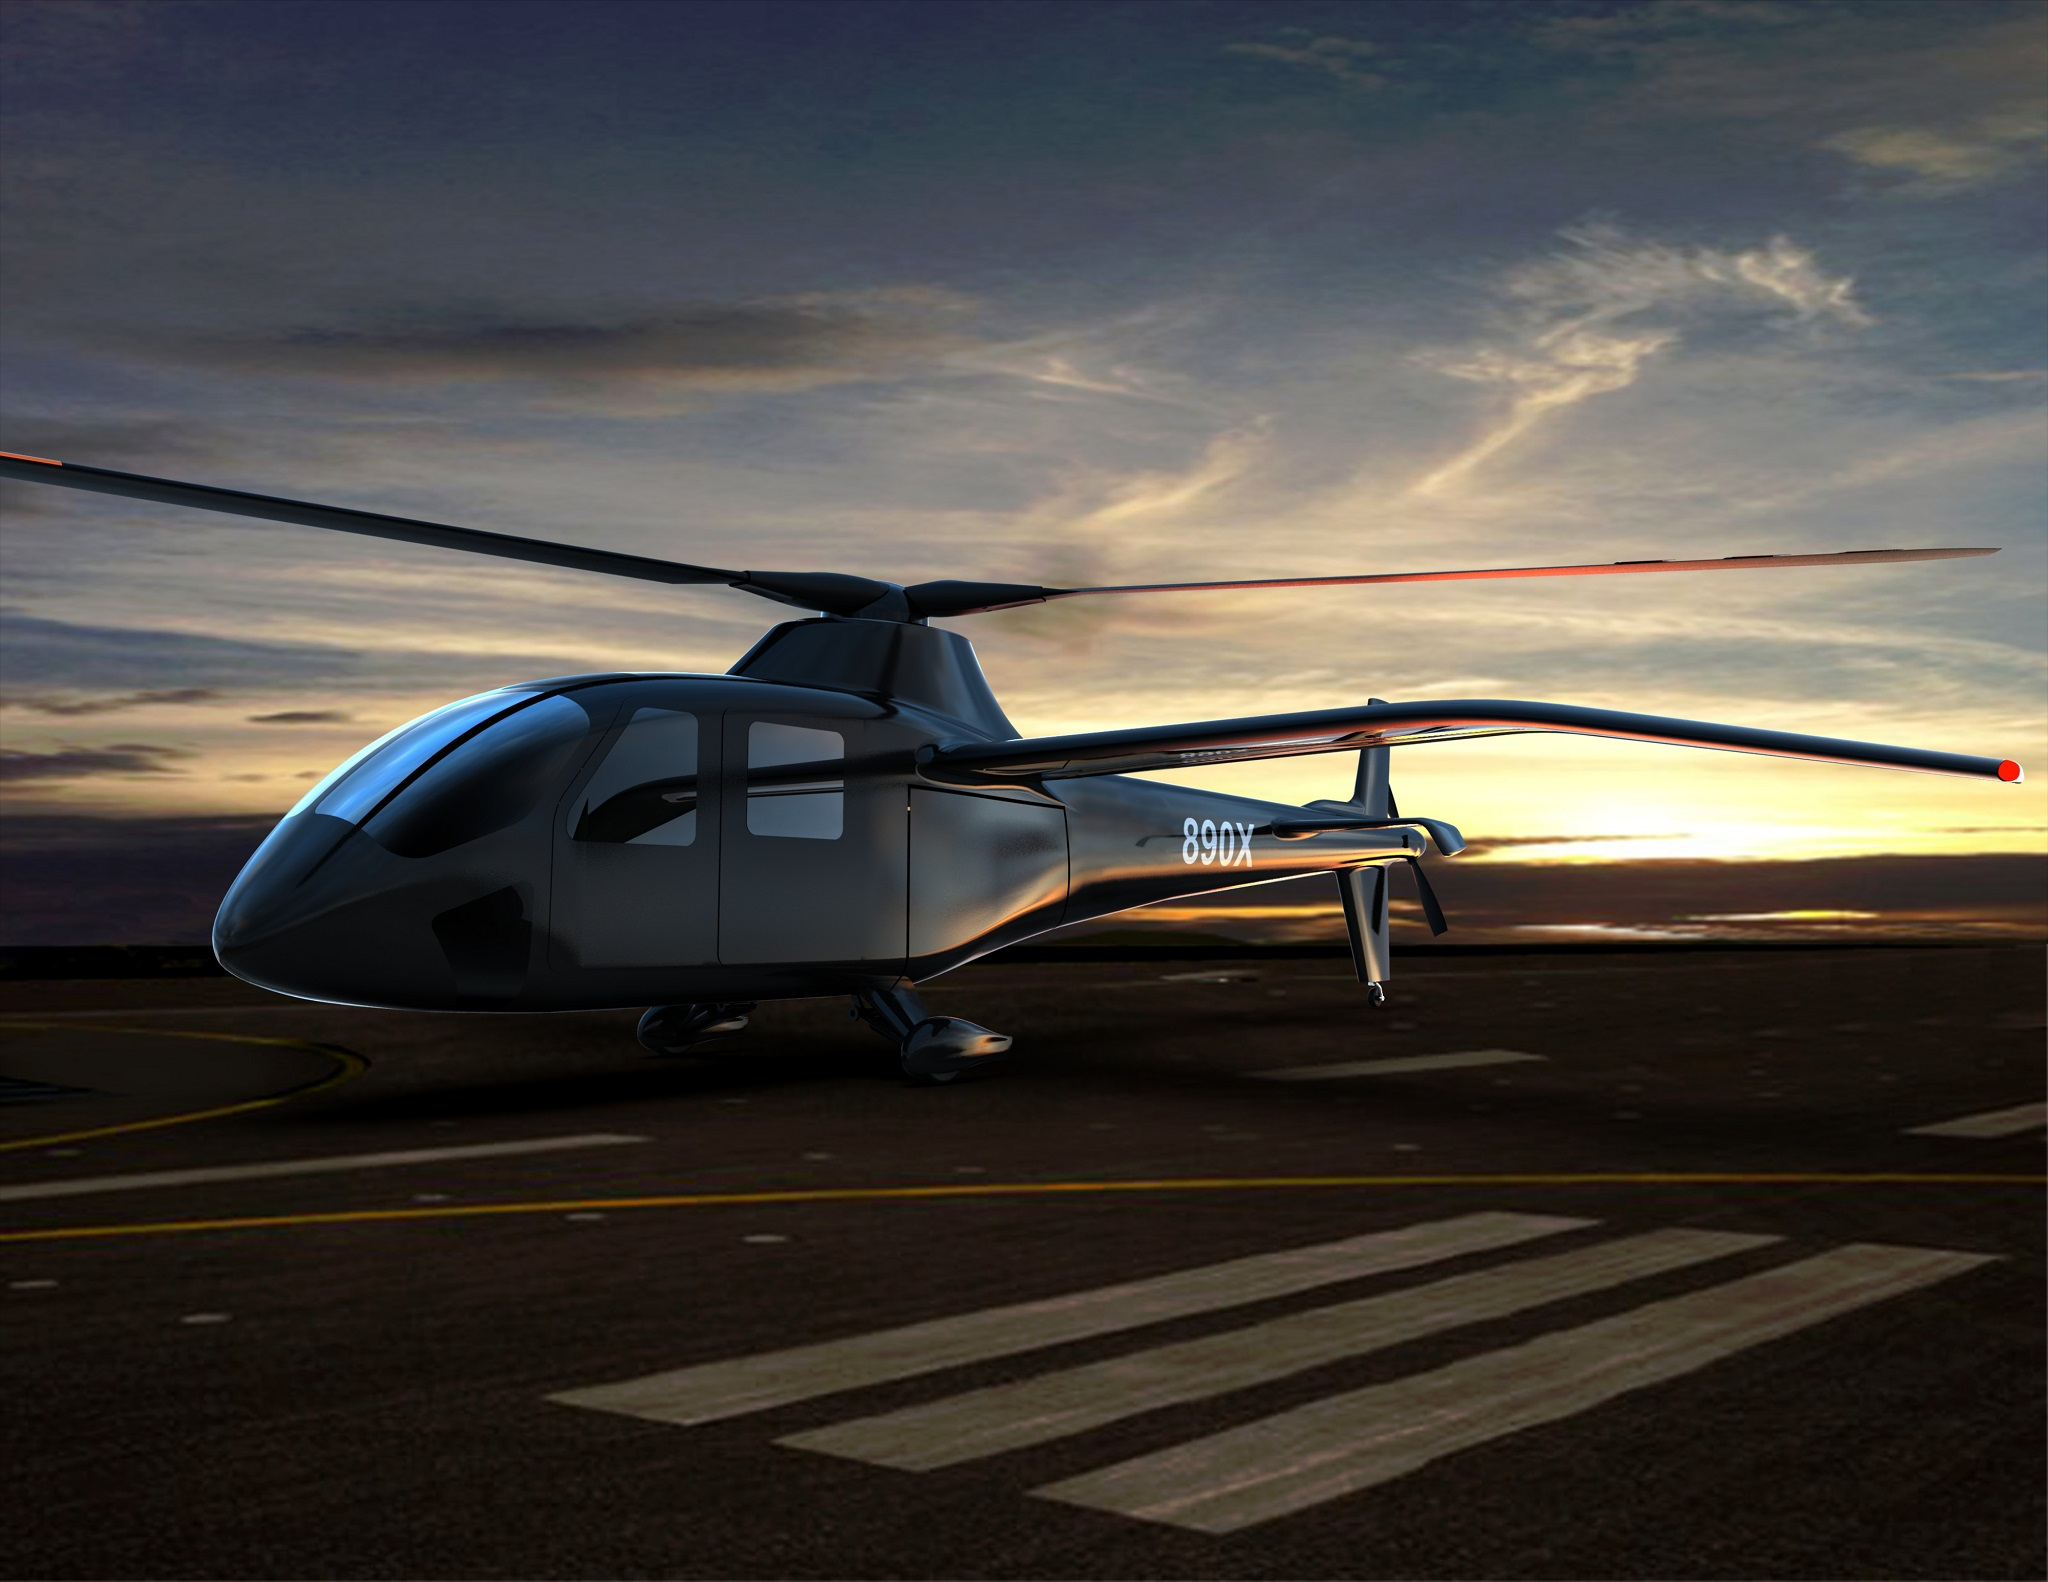 Piasecki Aircraft: Carrying on the Spirit of Innovation